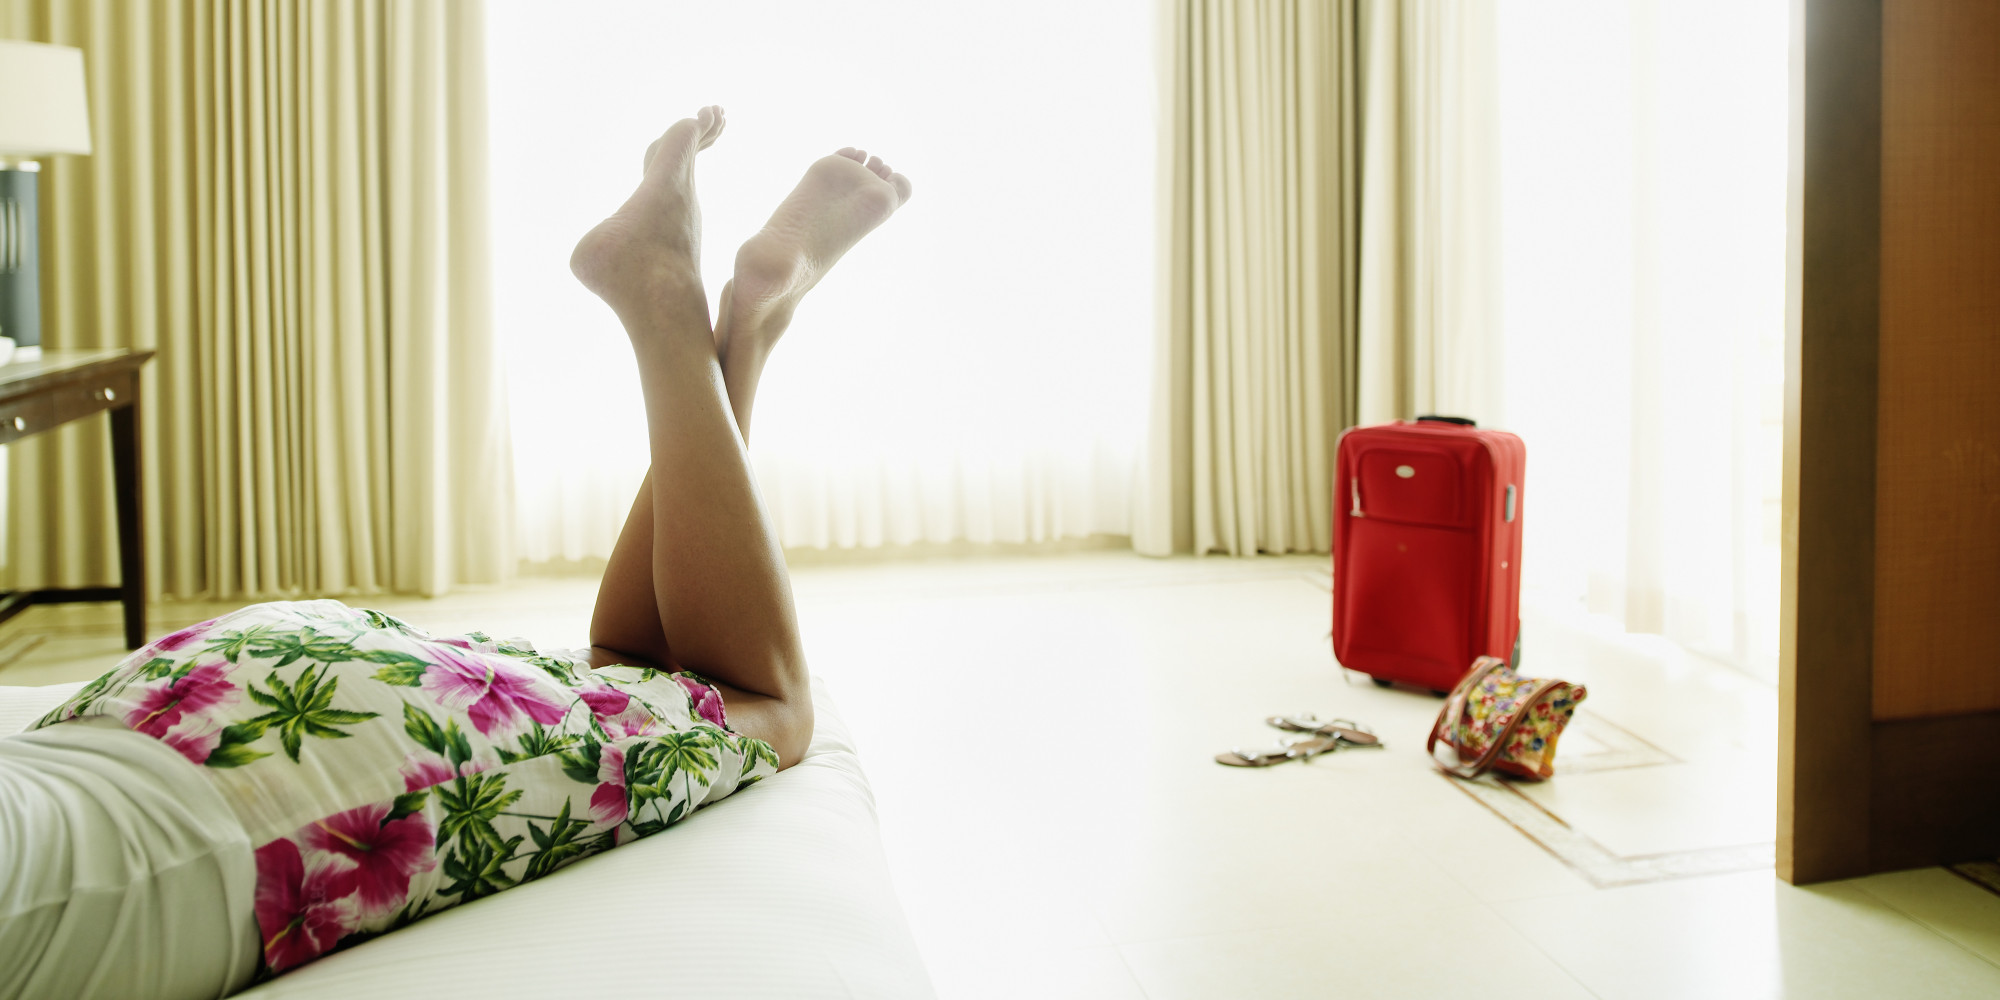 It Room: Why Your Hotel Room Costs What It Does